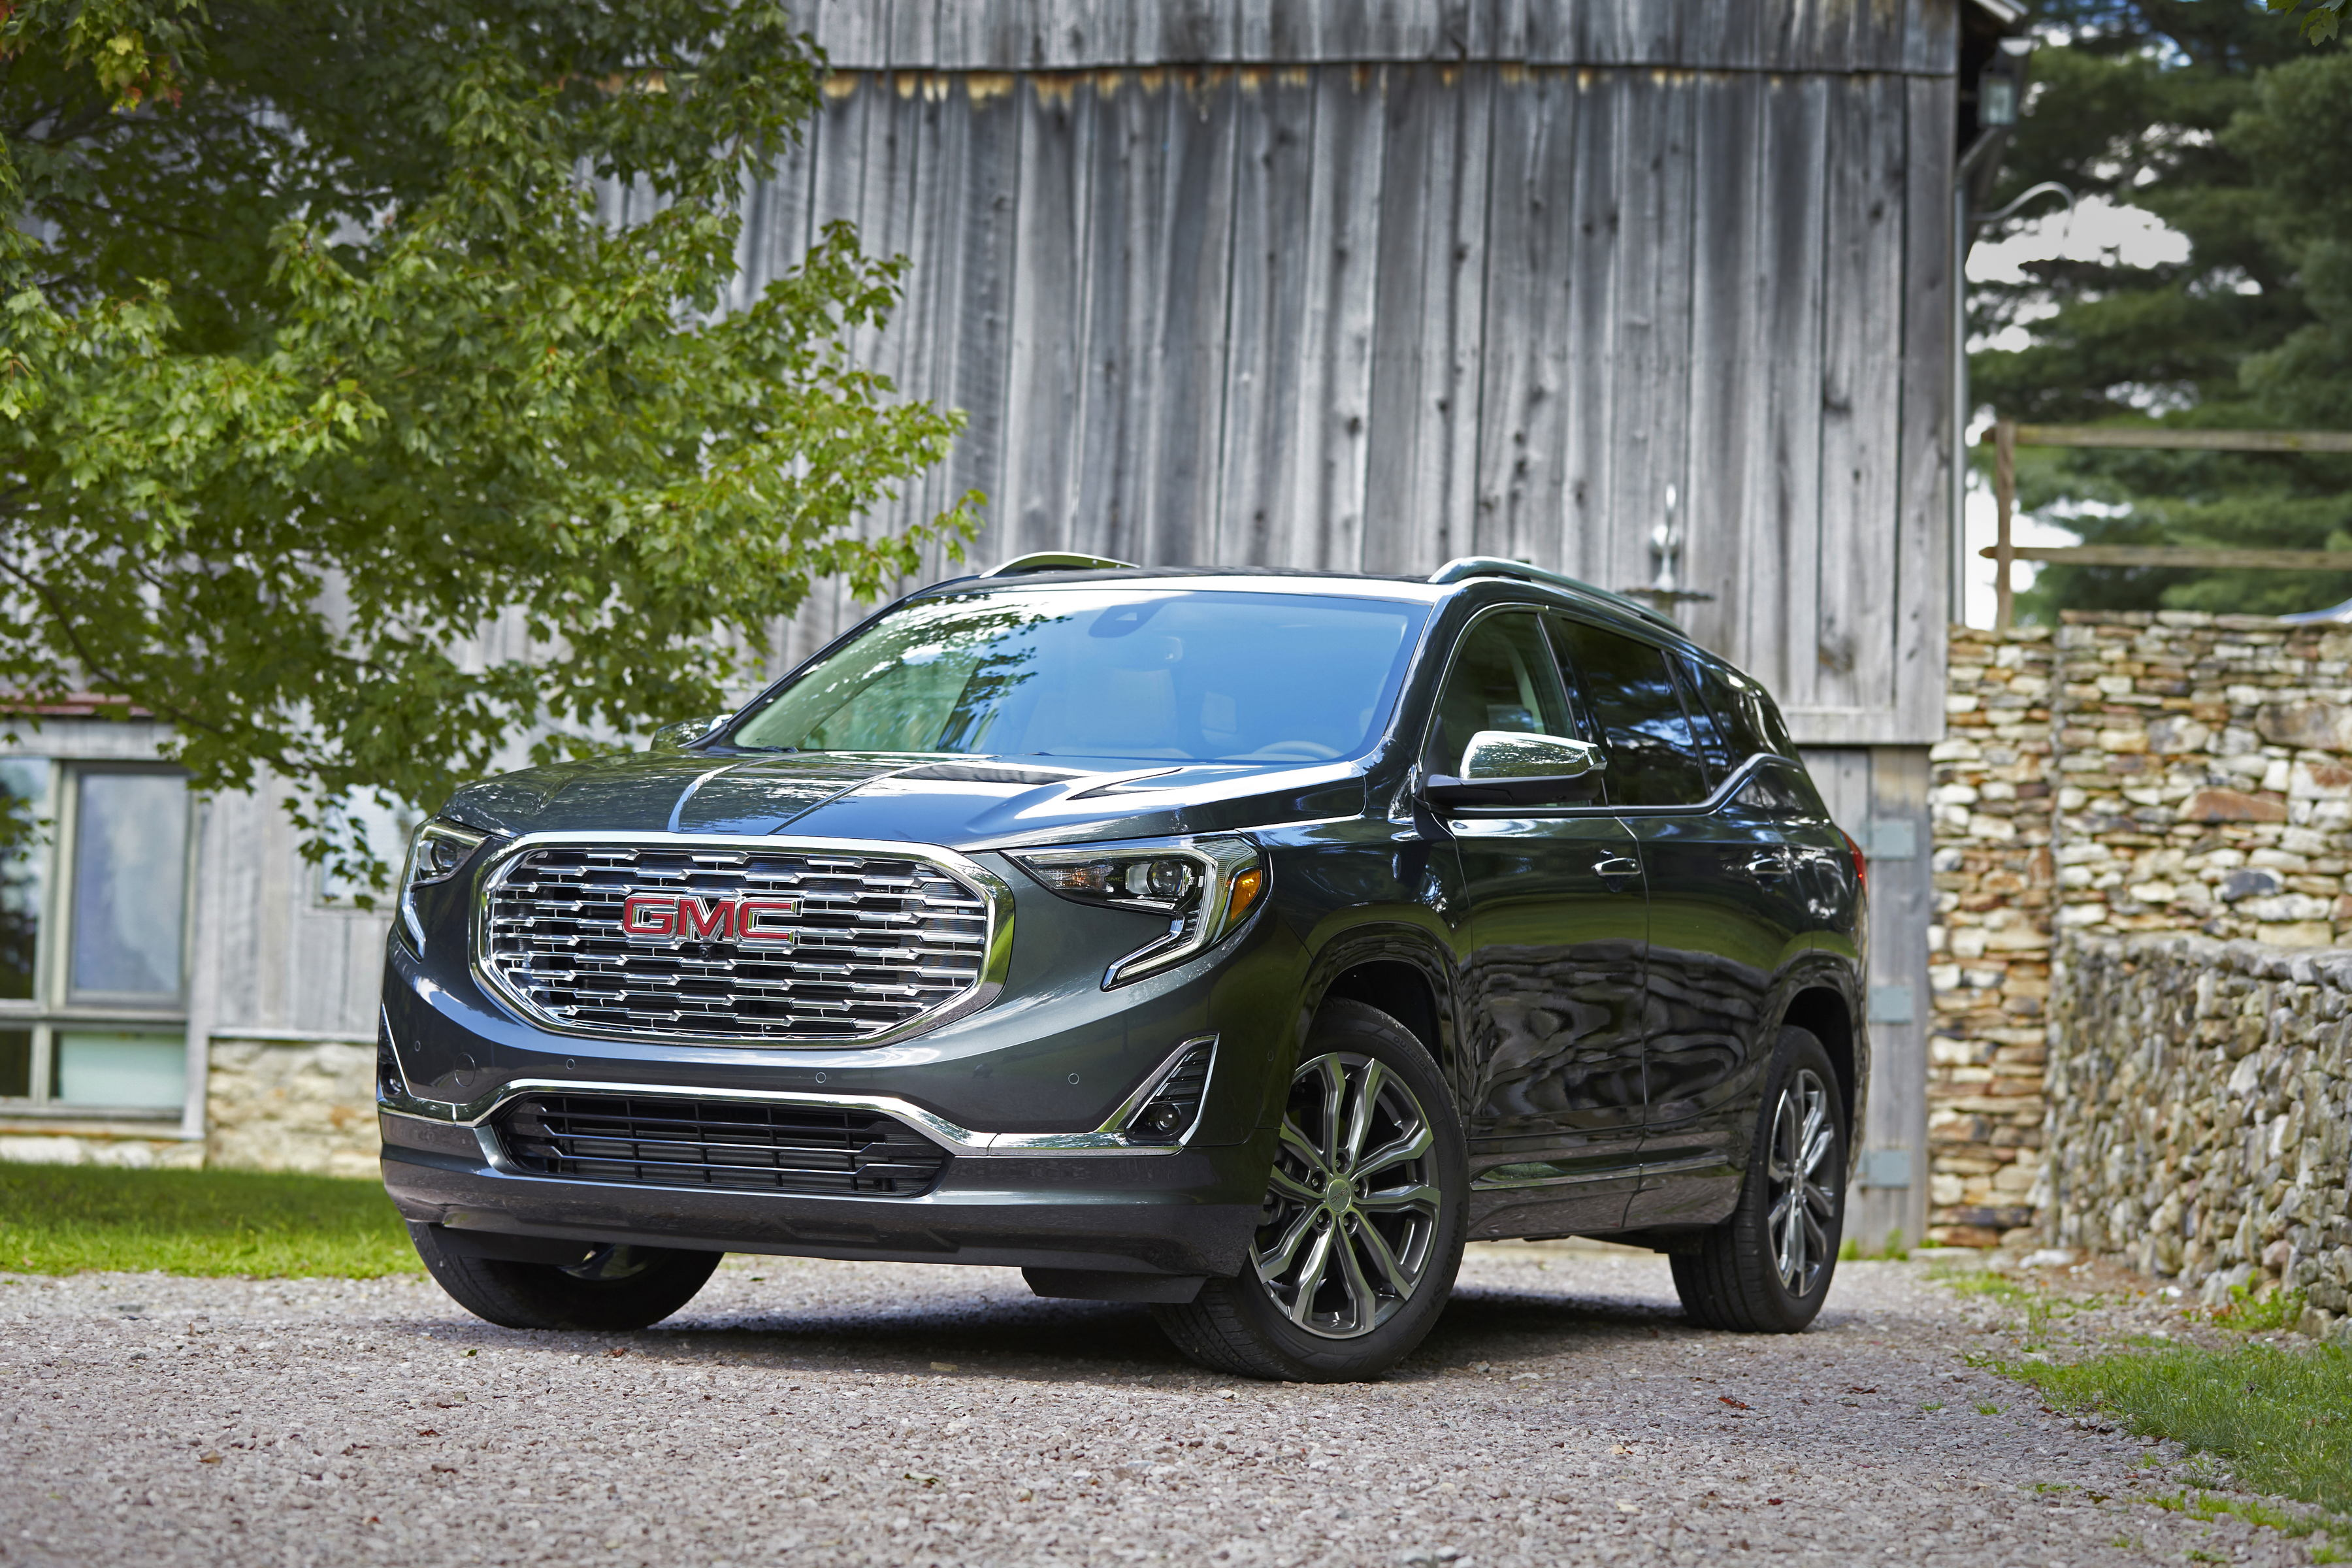 2018 gmc terrain reinvented with a new look engine and so much more houston style magazine. Black Bedroom Furniture Sets. Home Design Ideas